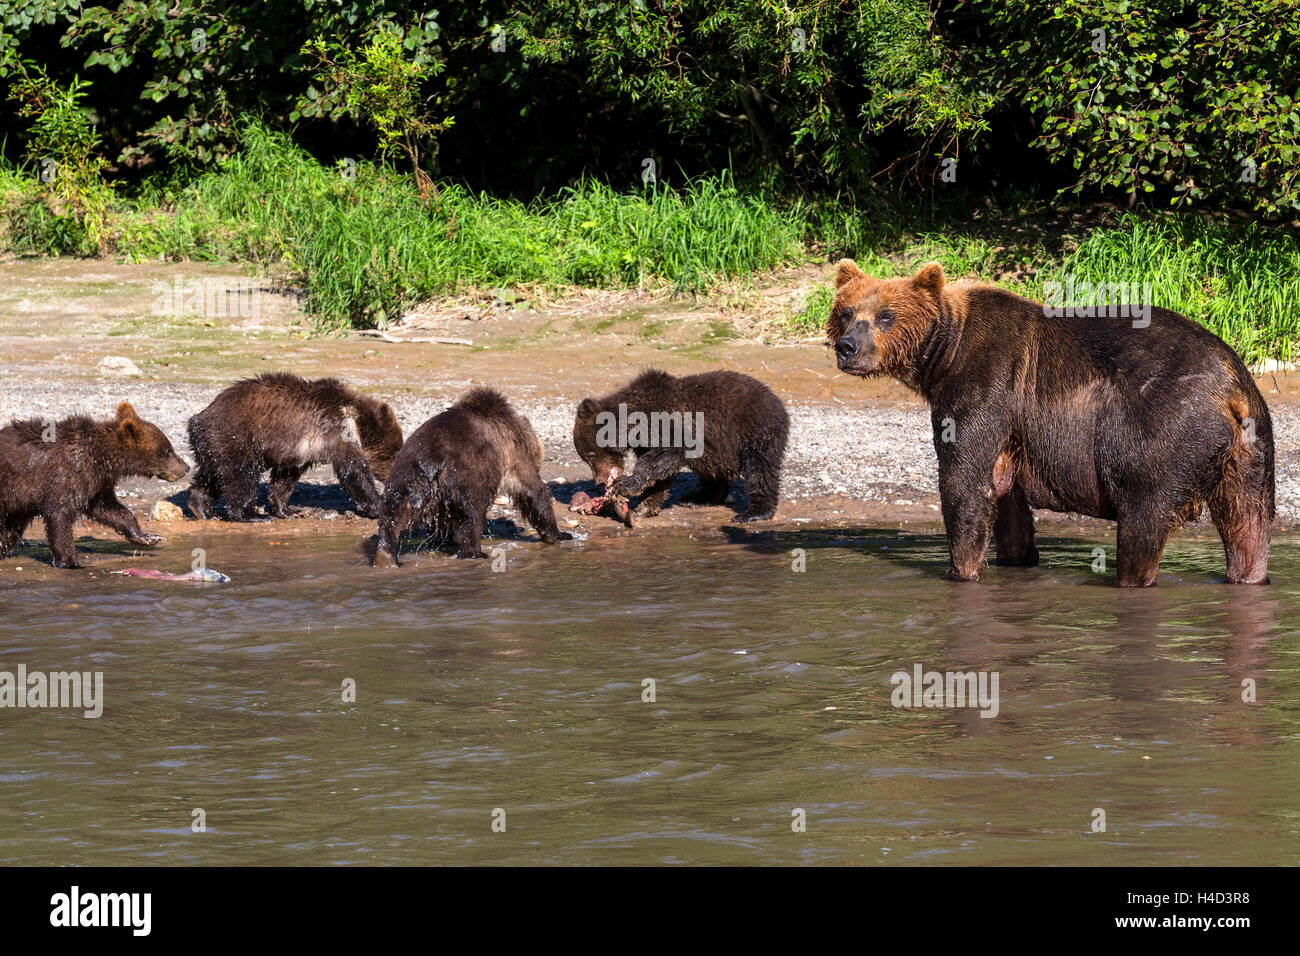 View of a bear with cubs go to a river bank fishing for salmon in Kamchatka region, Russia - Stock Image